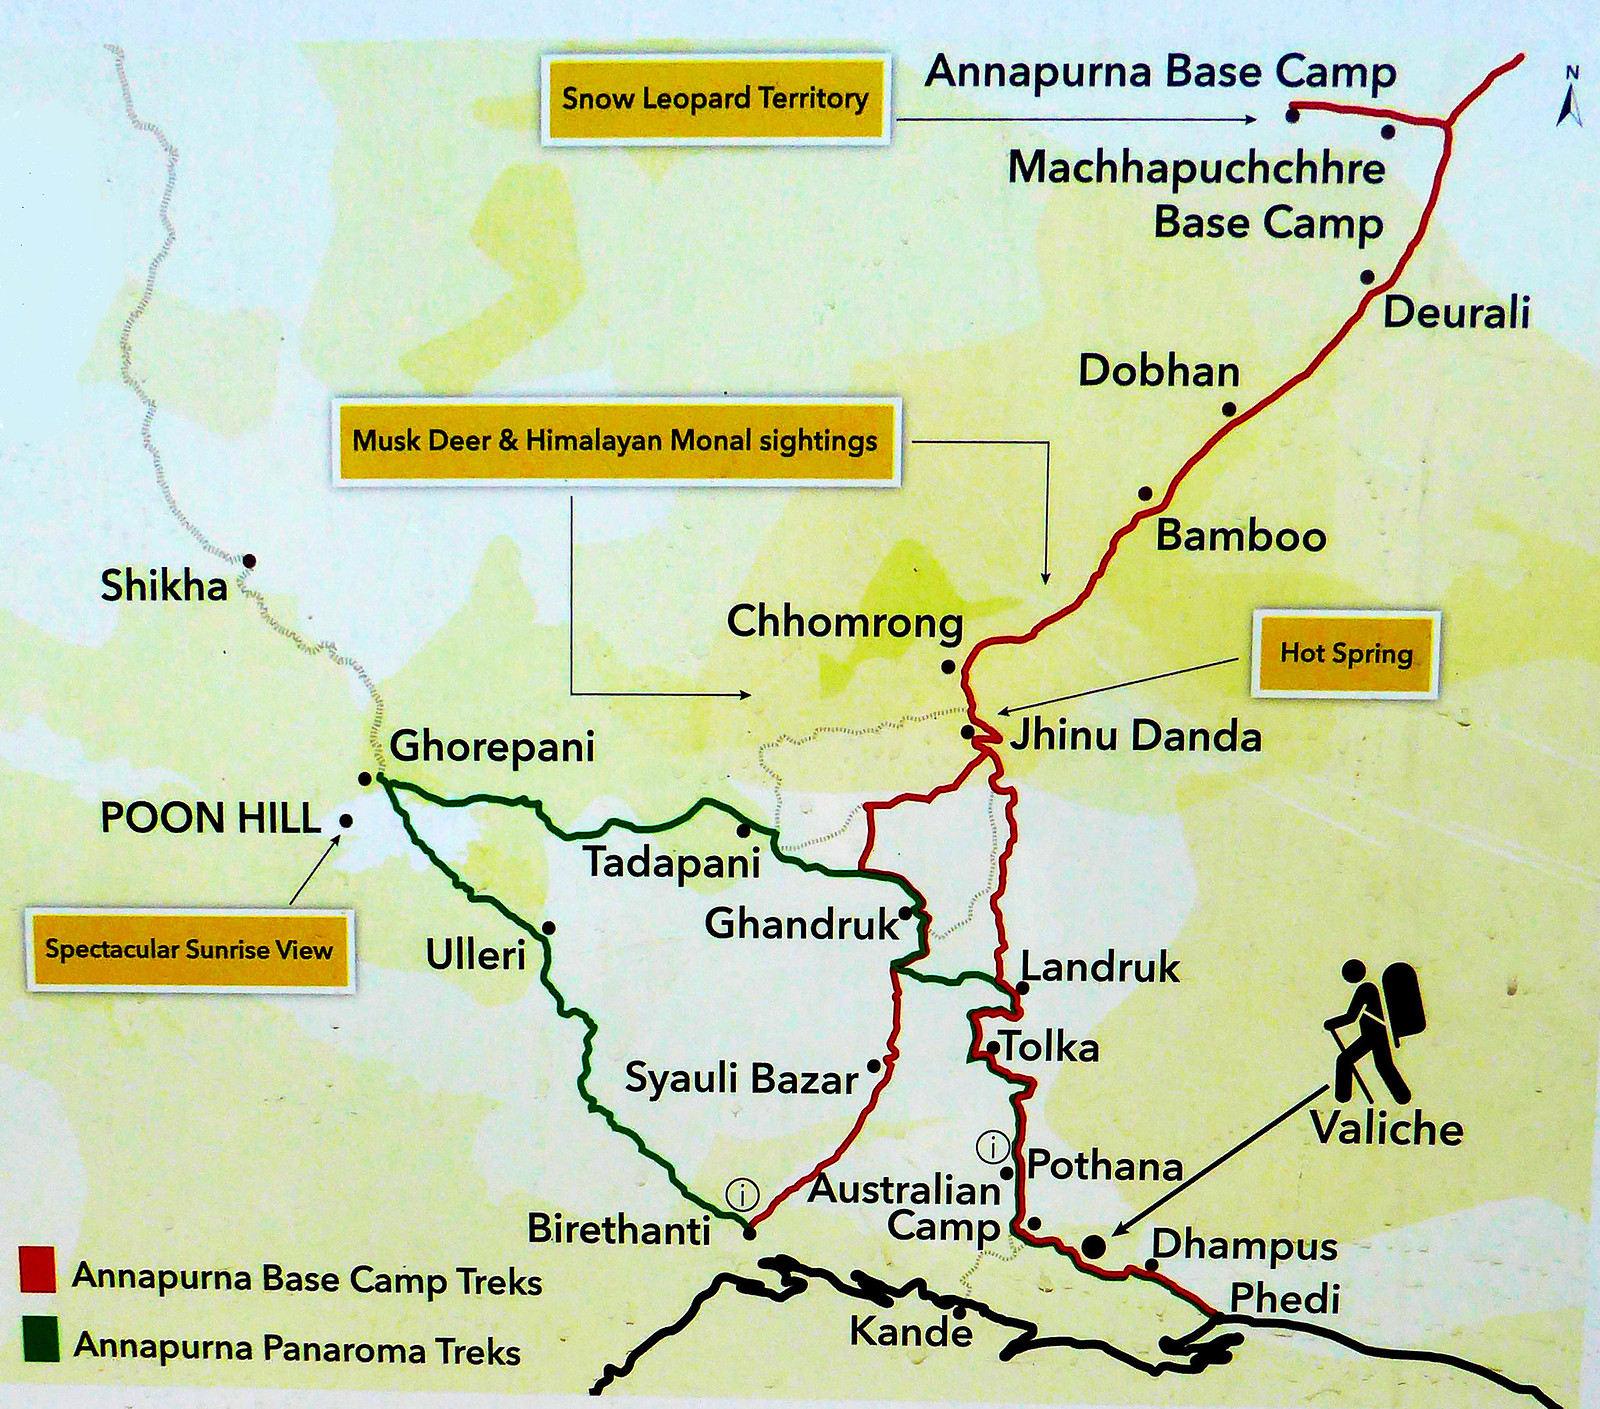 Map of the Poon Hill Trek, Annapurna Panoramic Treks, and The Annapurna Base Camp Trek produced by the Annapurna Conservation Area project.